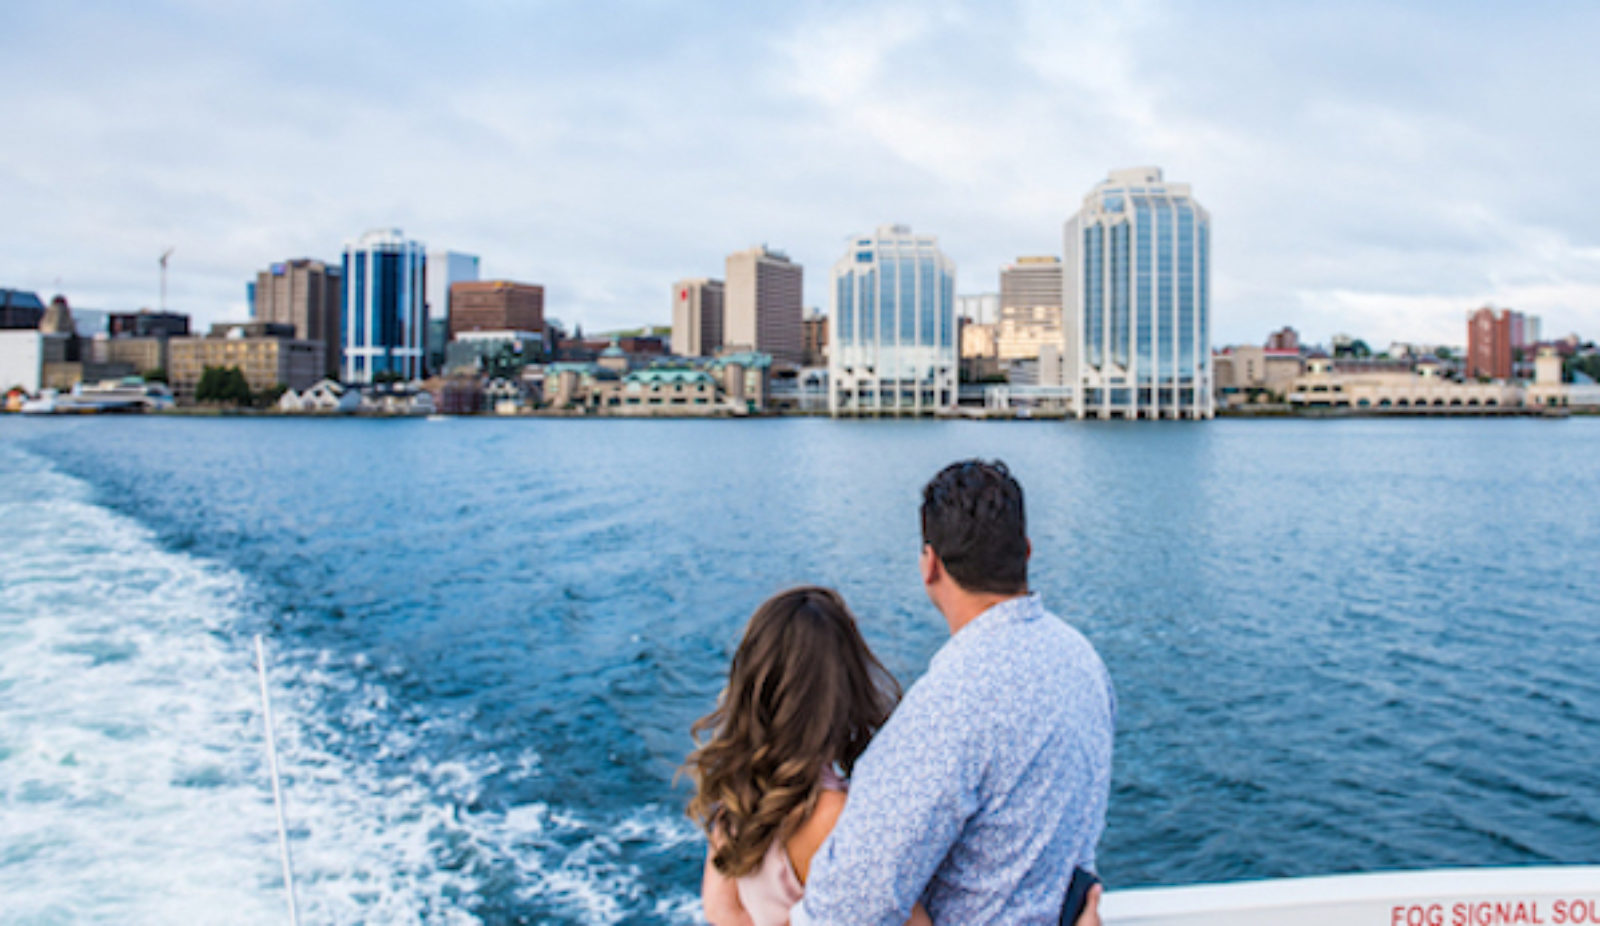 Couple-on-Ferry-Walking-on-Waterfront-RAW-EDIT3631_170518_153143_Attending.JPG#asset:3821:fullWidth